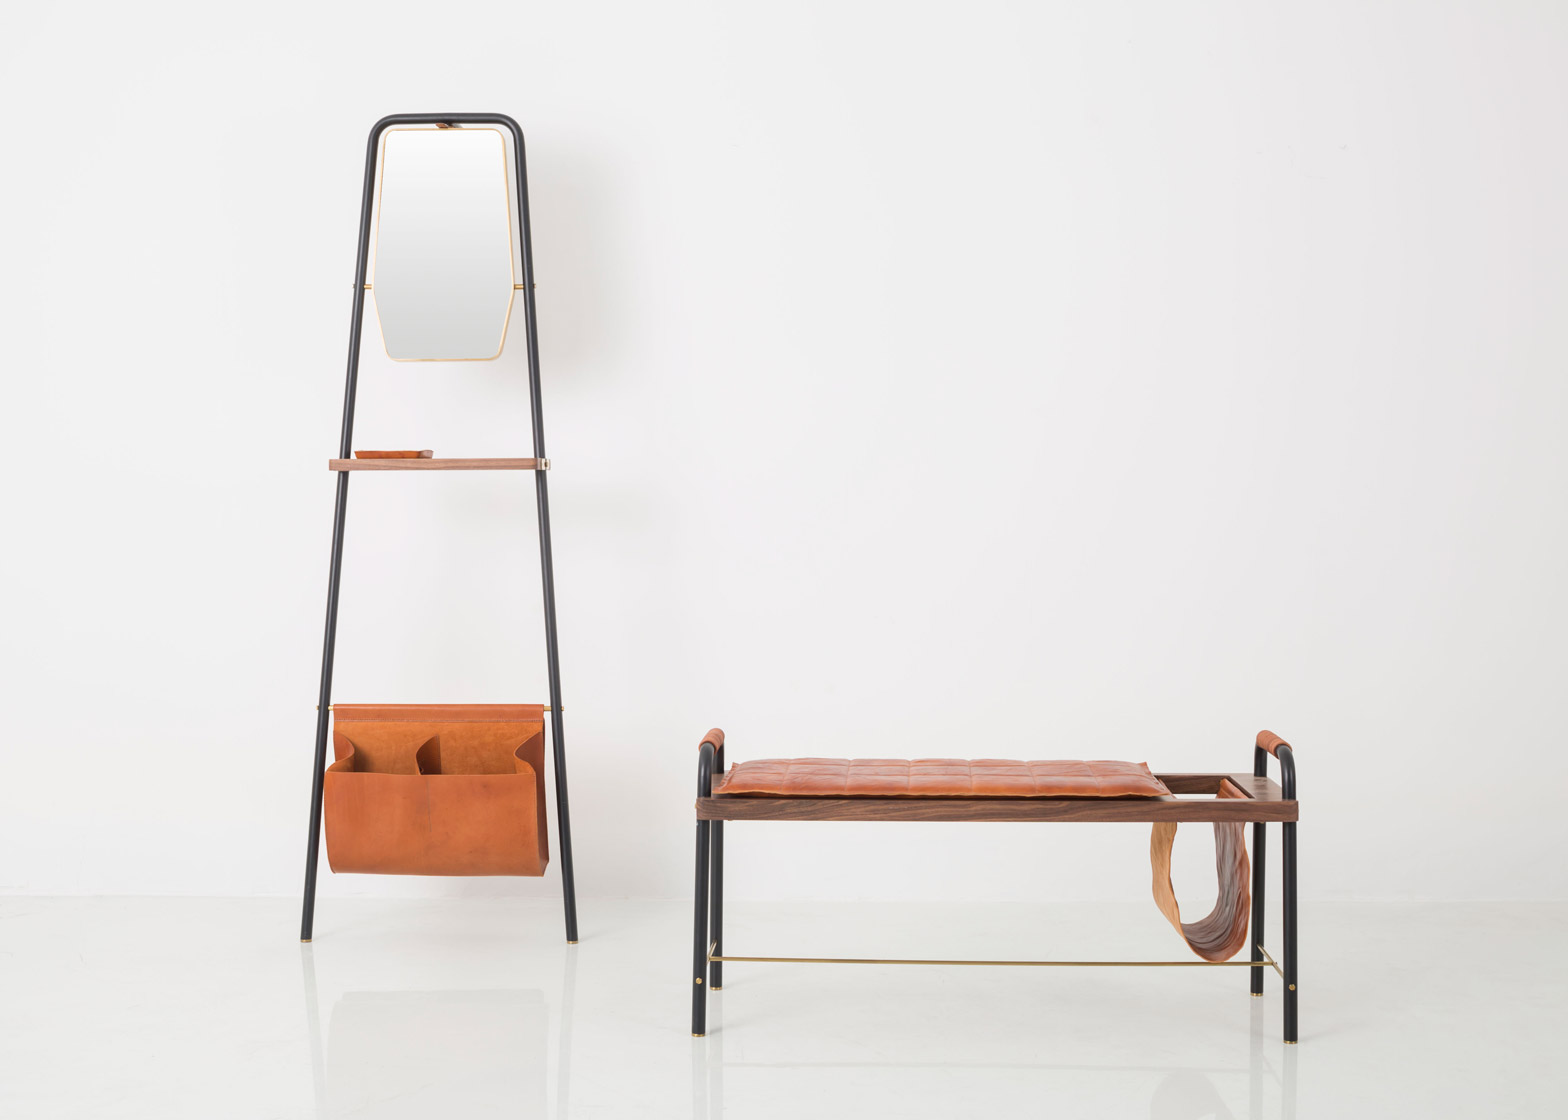 David Rockwell Designs Valet Furniture For Stellar Works